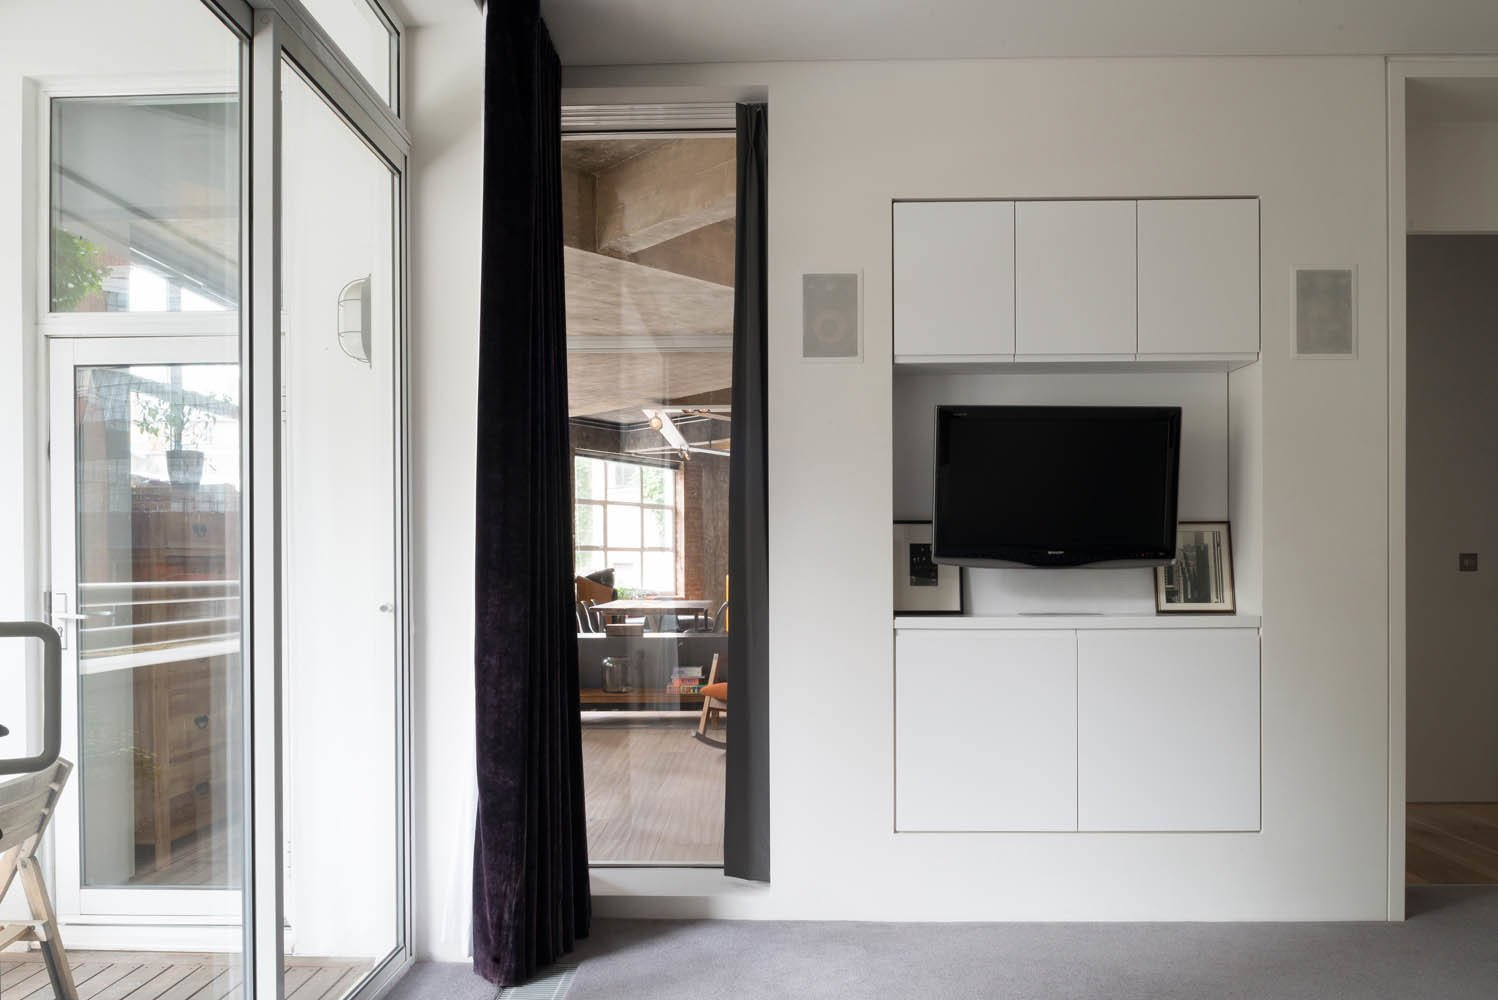 A view of the living room through a floor-to-ceiling window in the bedroom. Photo by Jim Stephenson.  Photo 7 of 8 in Renovation Opens Up a London Apartment